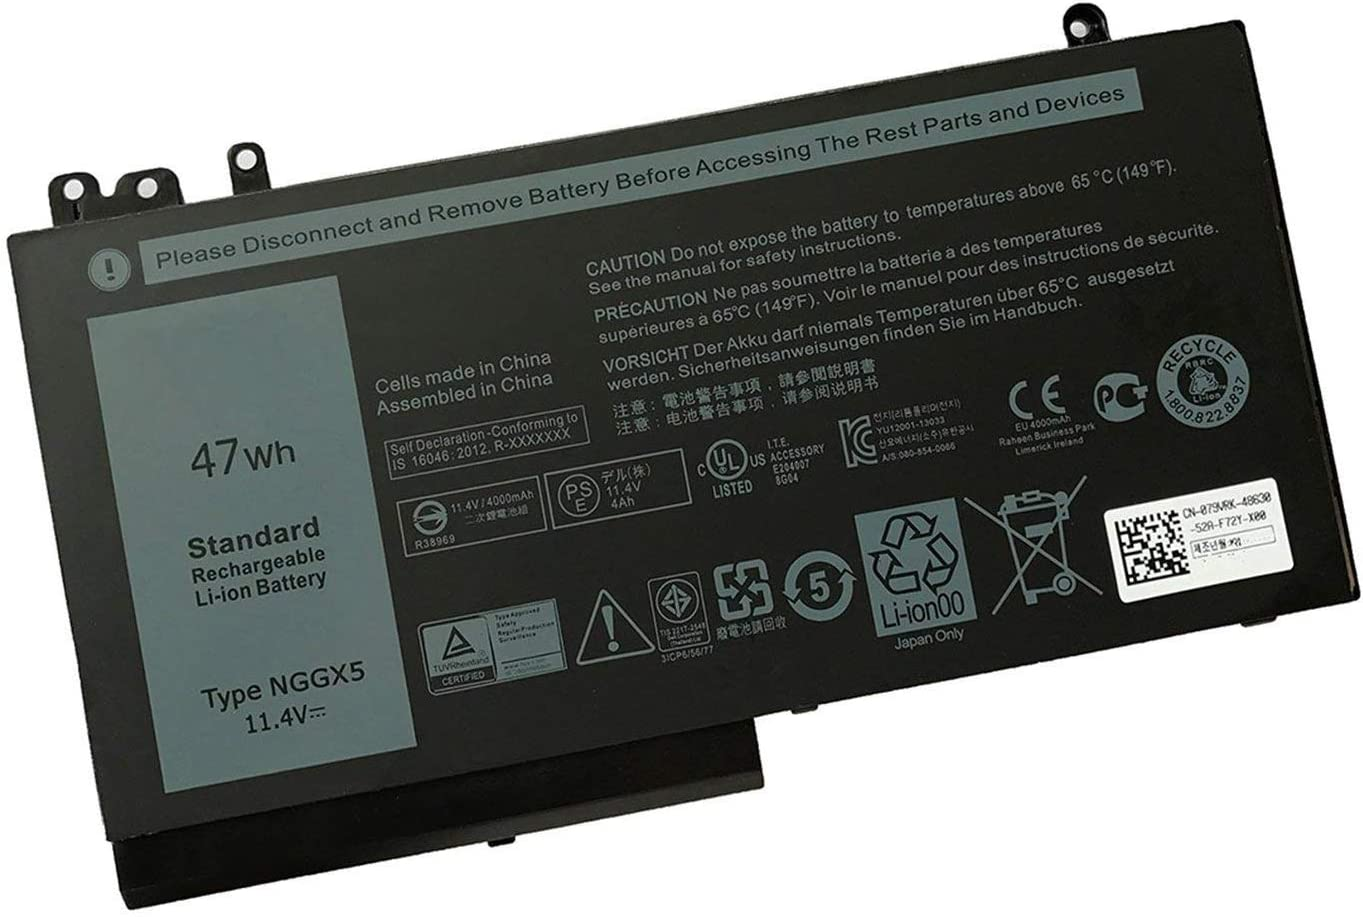 New NGGX5 battery for Dell Latitude E5270 11.4V 47Whr 3 Cell Primary Lithium-Ion Battery 954DF JY8DF